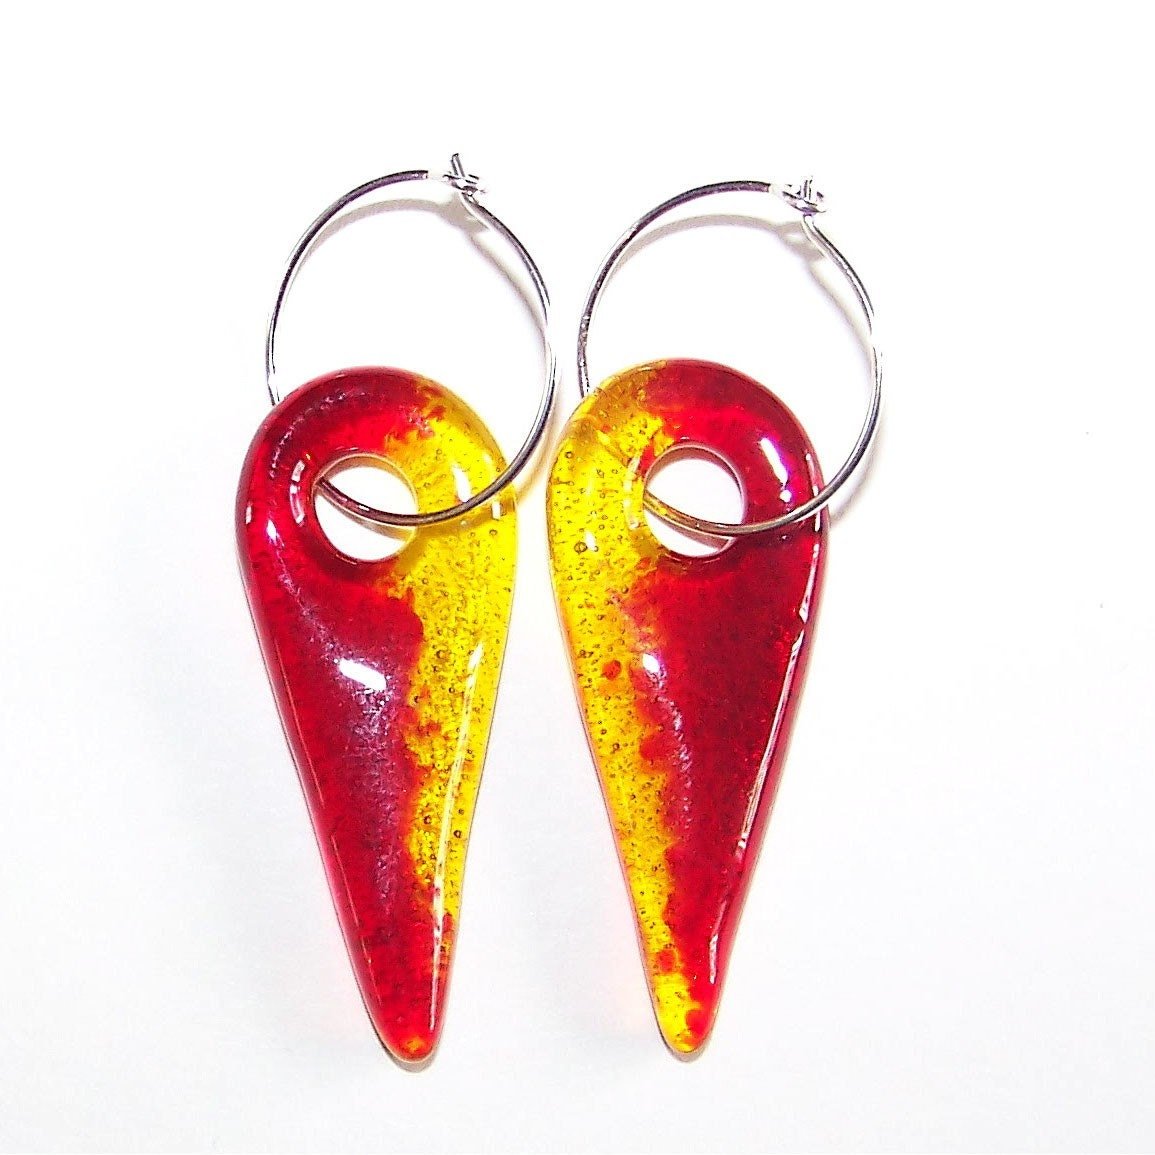 Fused Glass, Red and Yellow Duet Spike Earrings on Sterling Silver Hoops, jewelry by colorolight on Etsy - colorolight